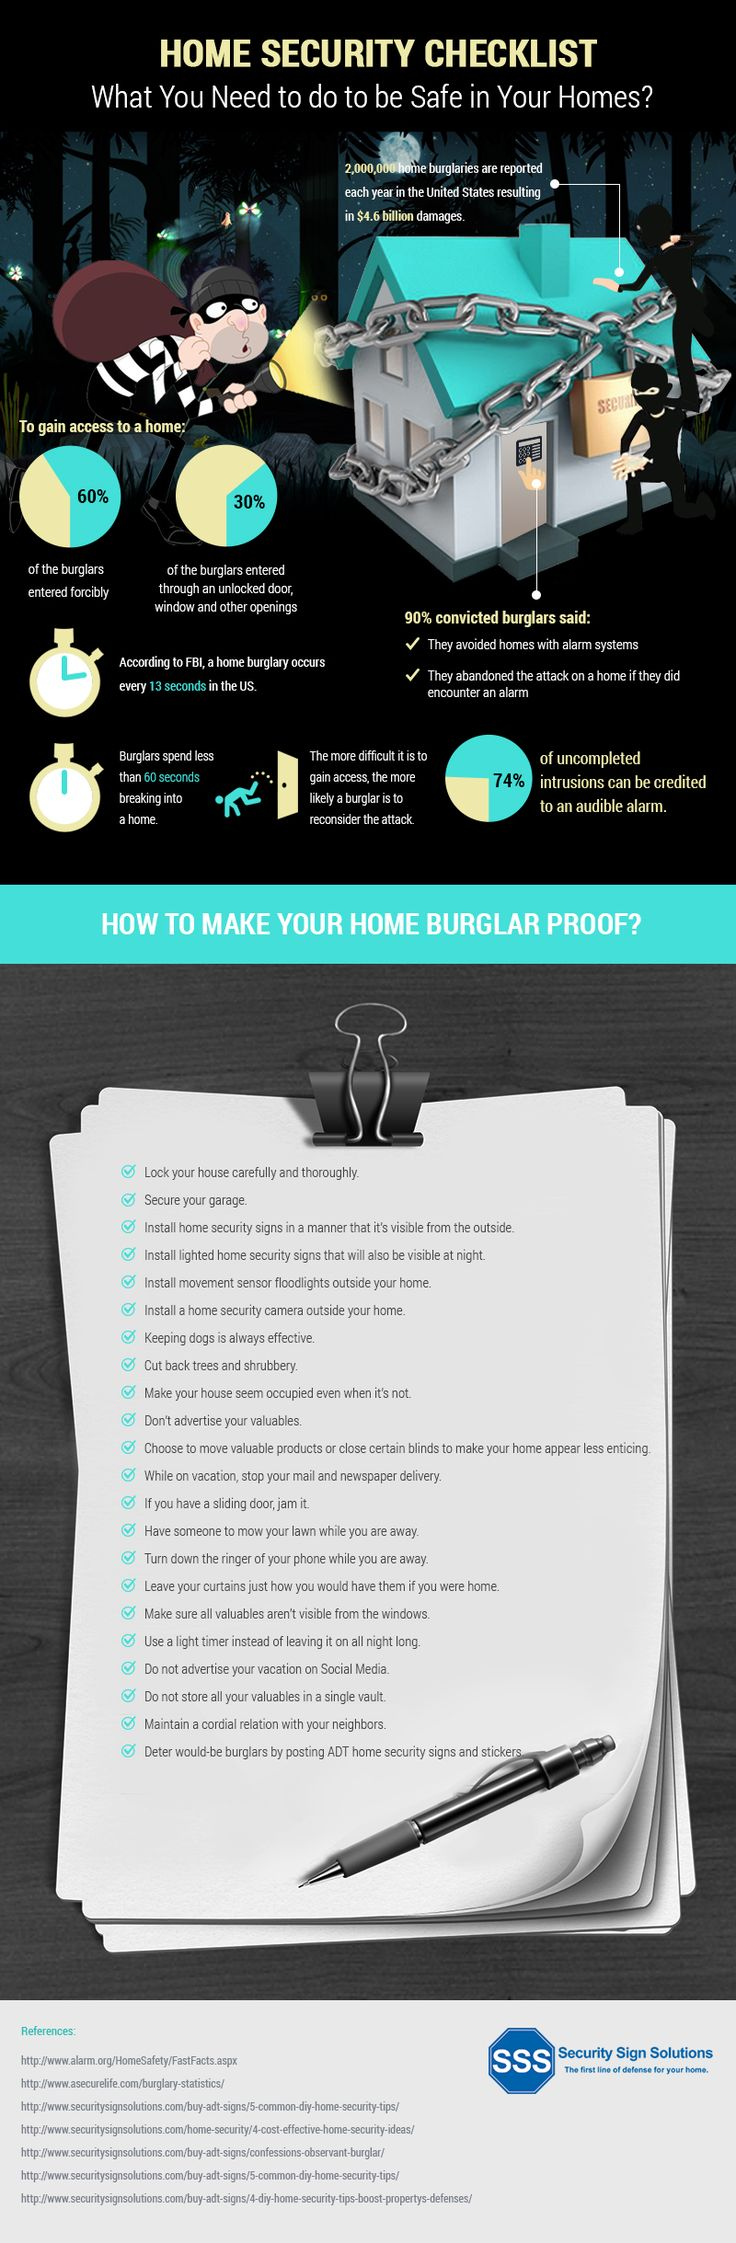 Home Security Checklist ( Infographic ) - Security Sign Solutions